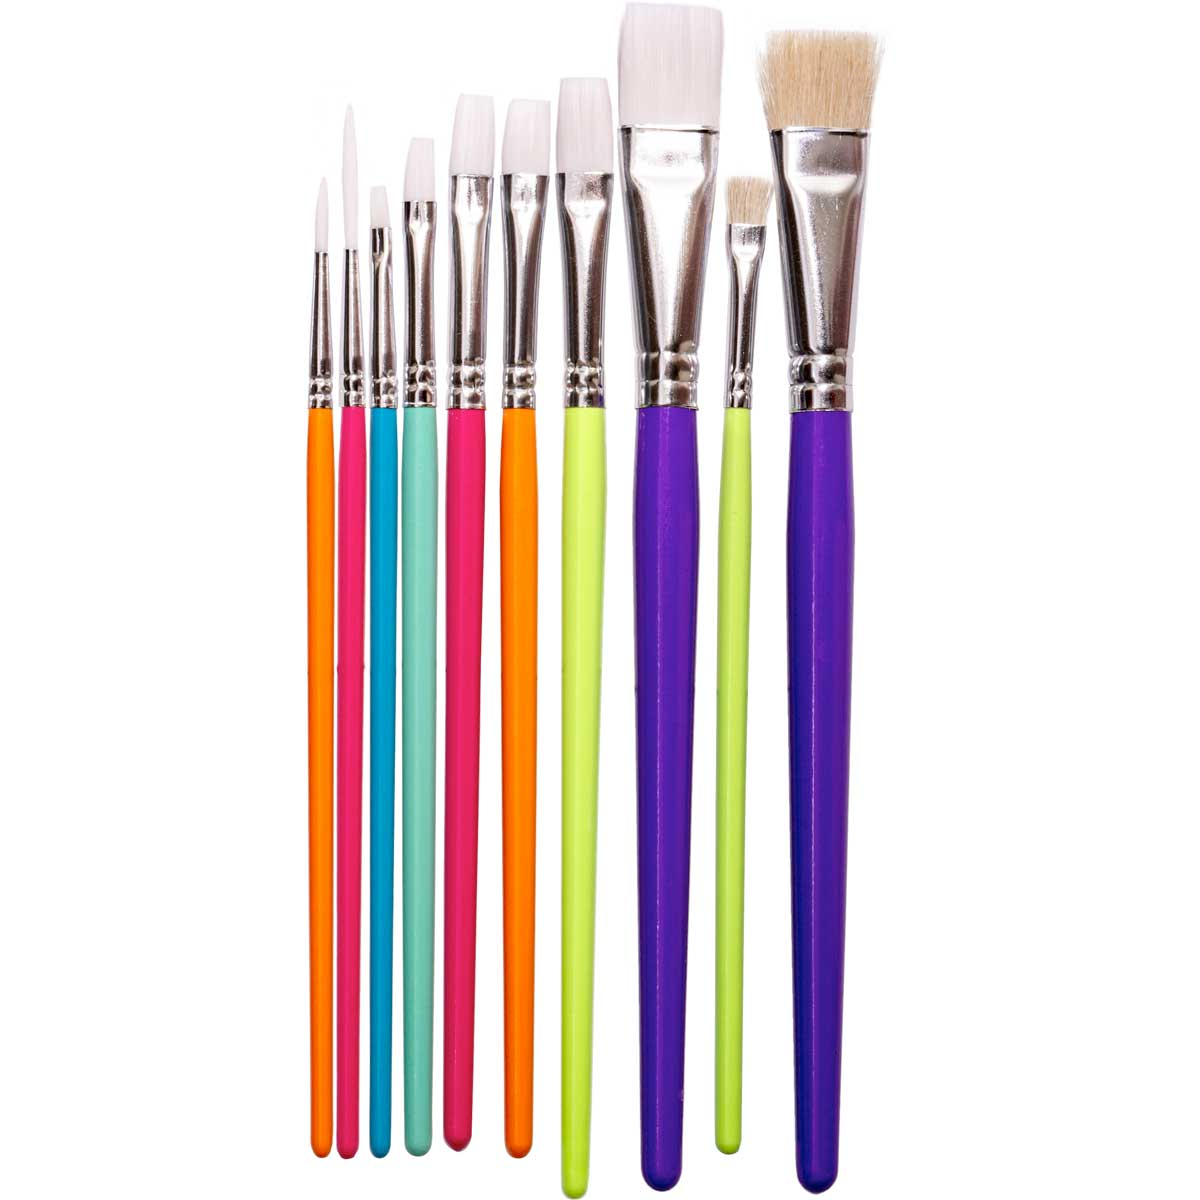 Plaid ® Color By Me™ Brush Sets - Artist Brushes, 10 pc. - 4930E